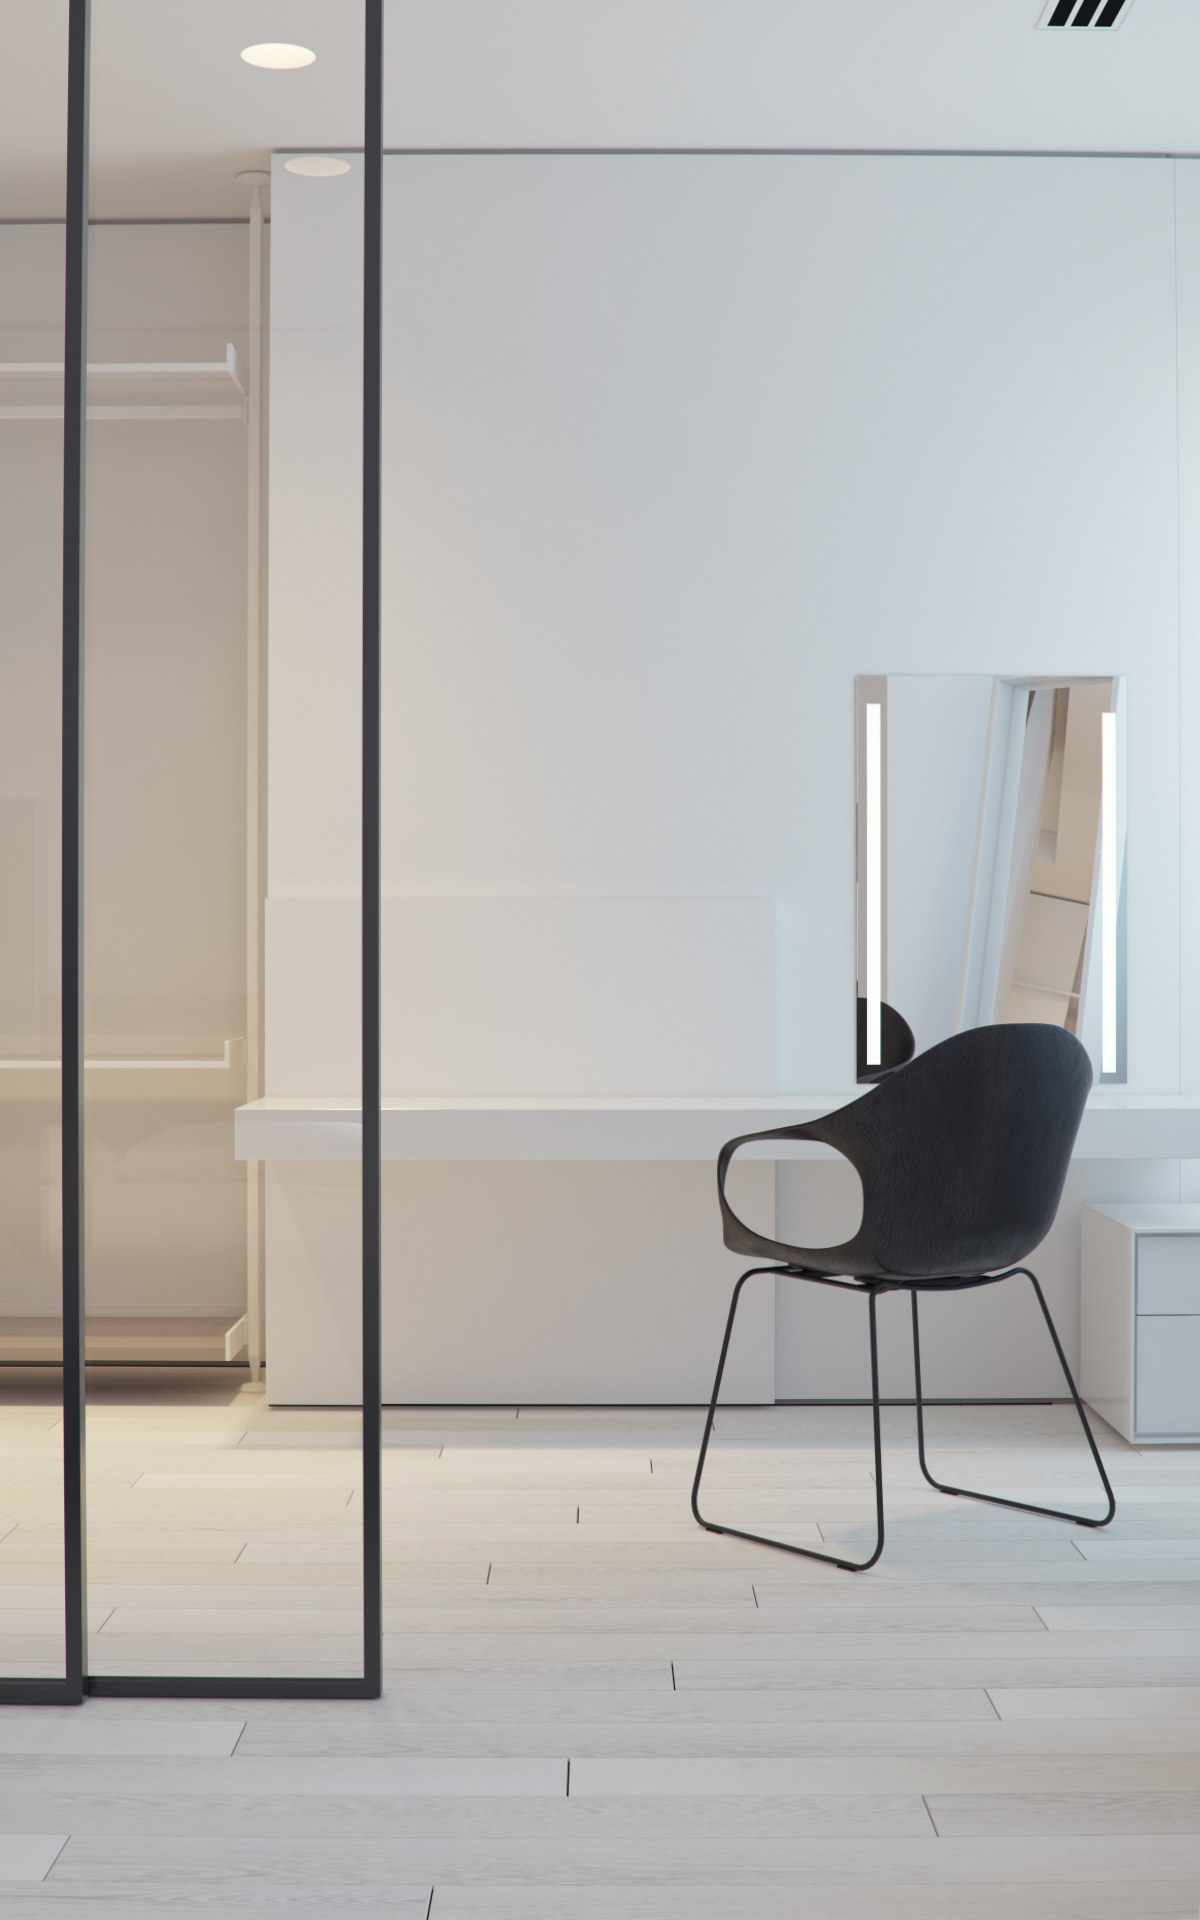 White Table And Black Chair In Walkin Closet - 3 white themed homes with striking modern minimalist aesthetics